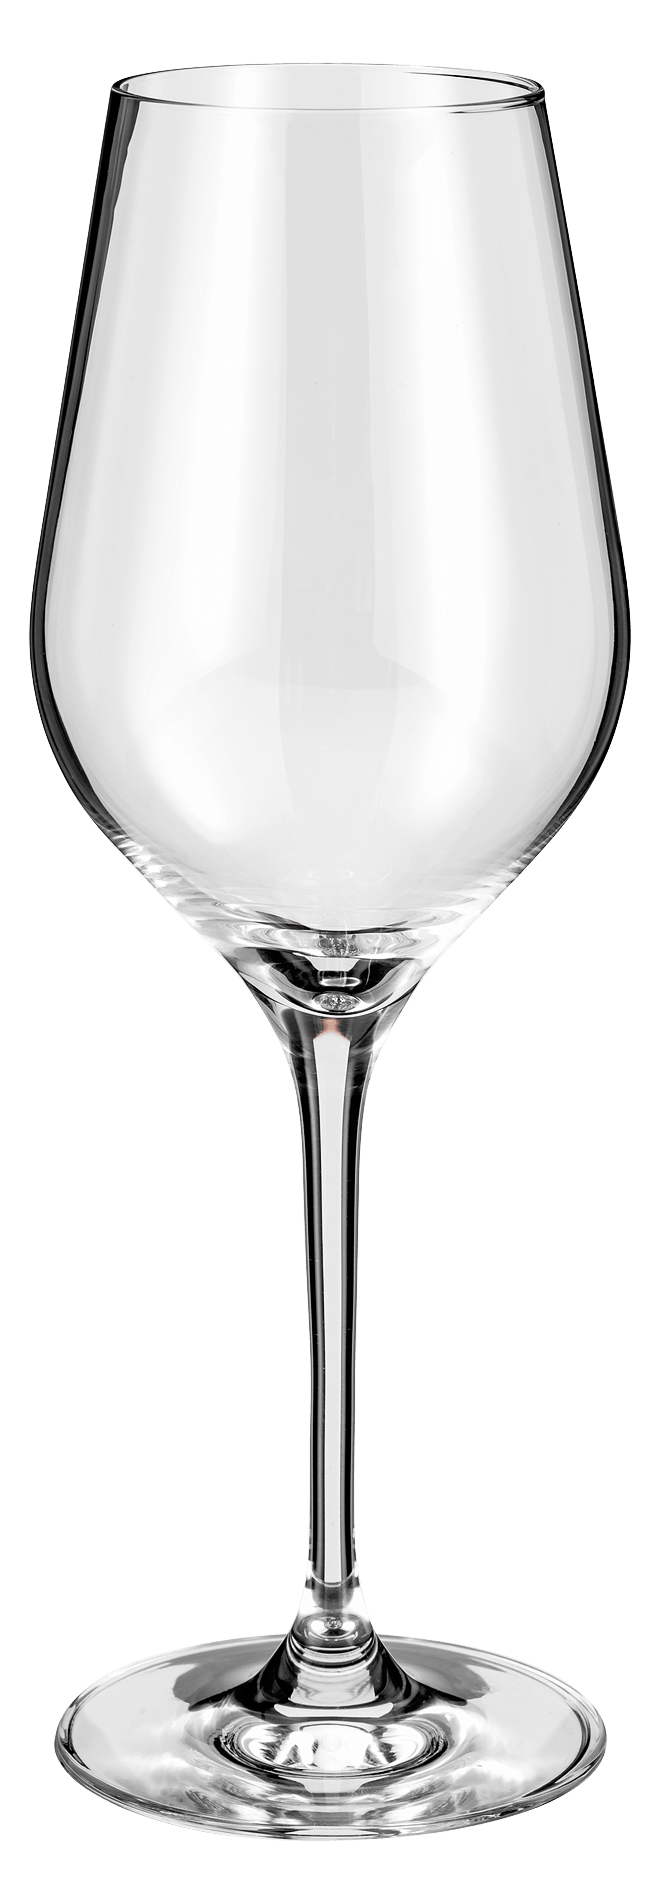 Judge Glassware  White Wine Glasses,